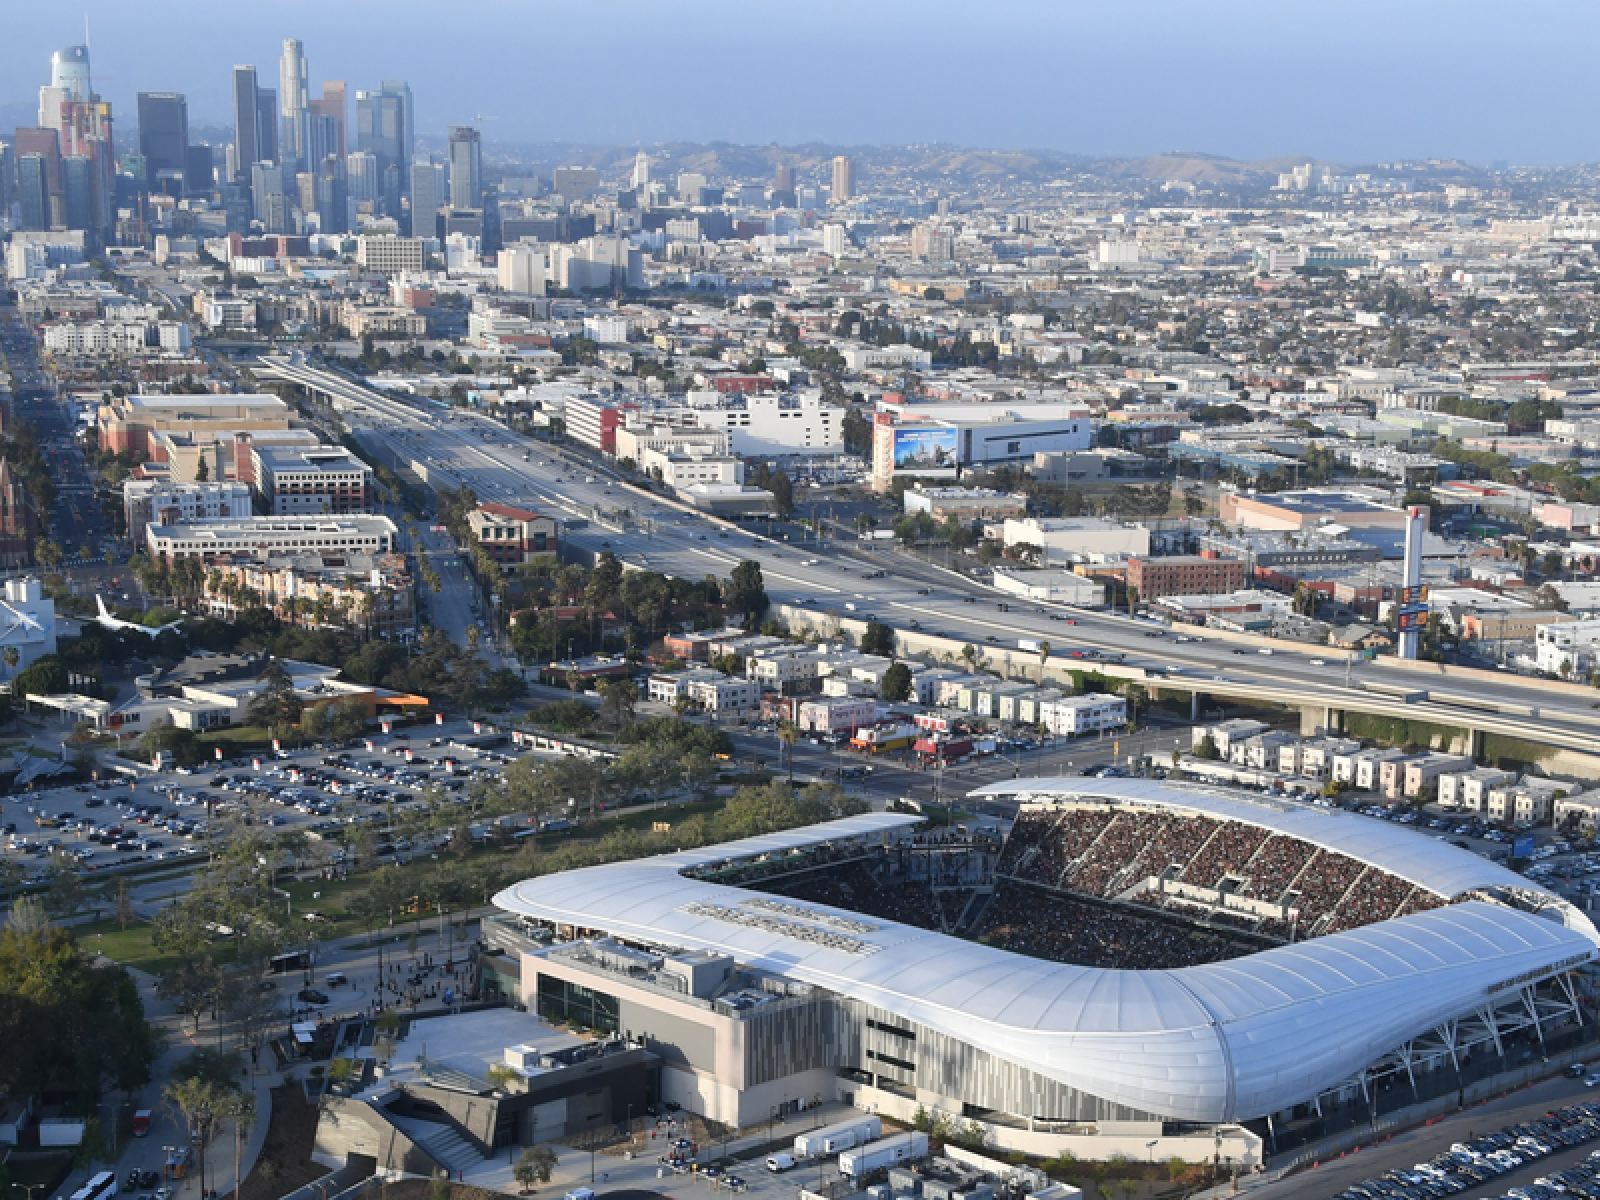 Main image for article titled Banc of CA Stadium is a Game-Changer